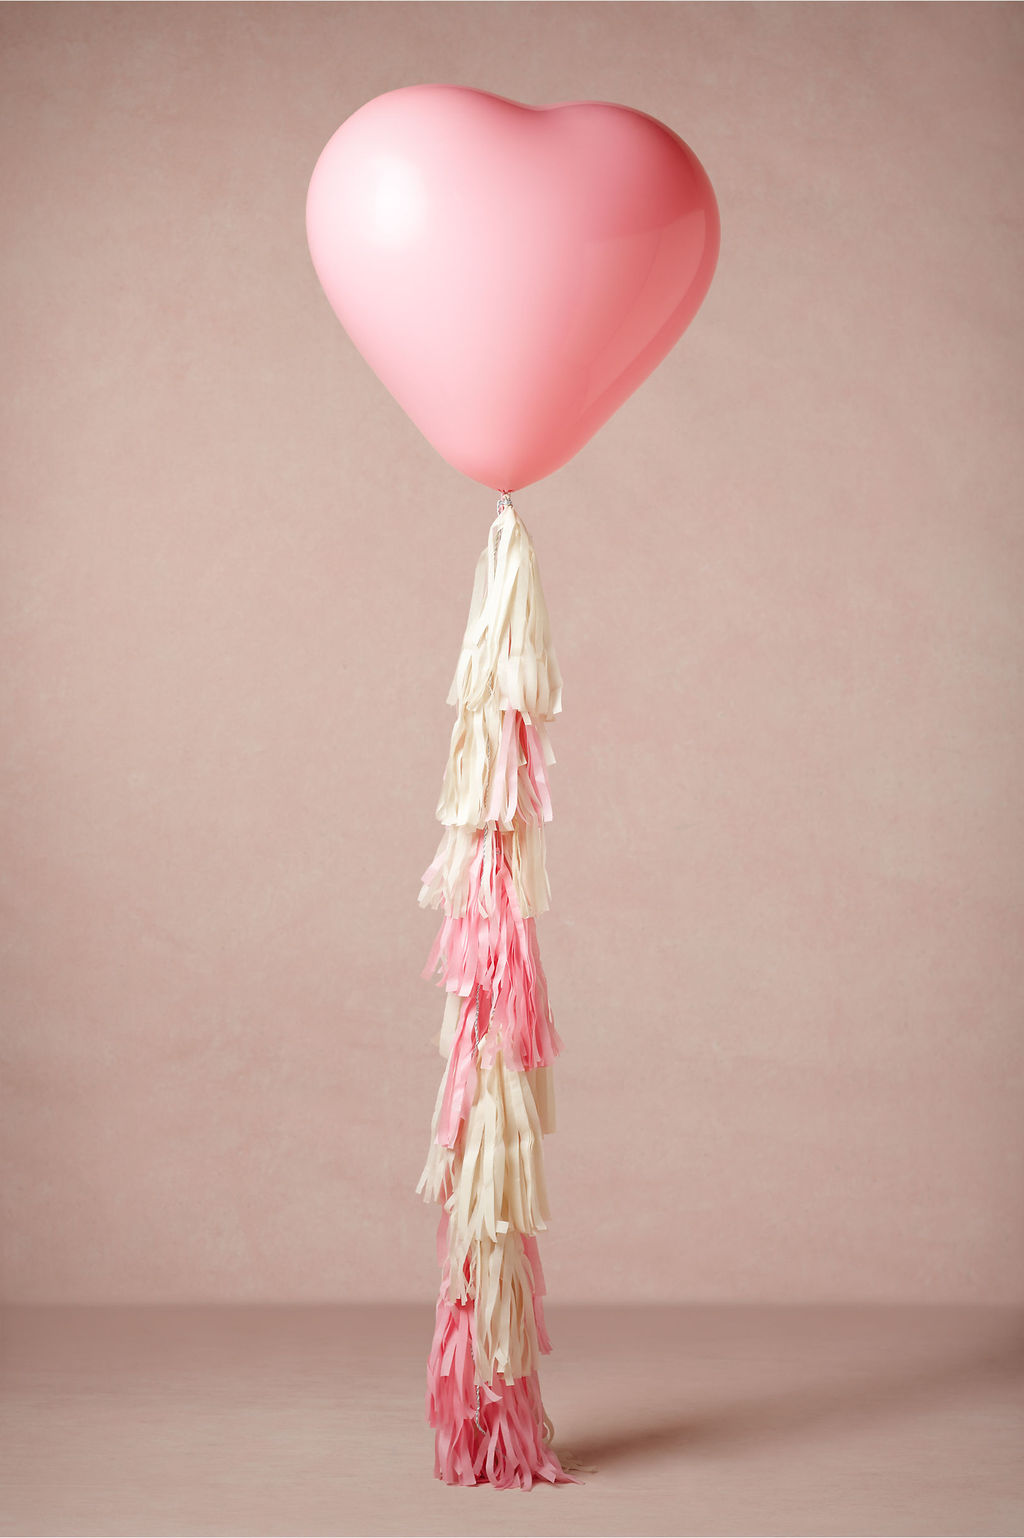 Balloons-for-the-wedding-pink-heart-shaped.full